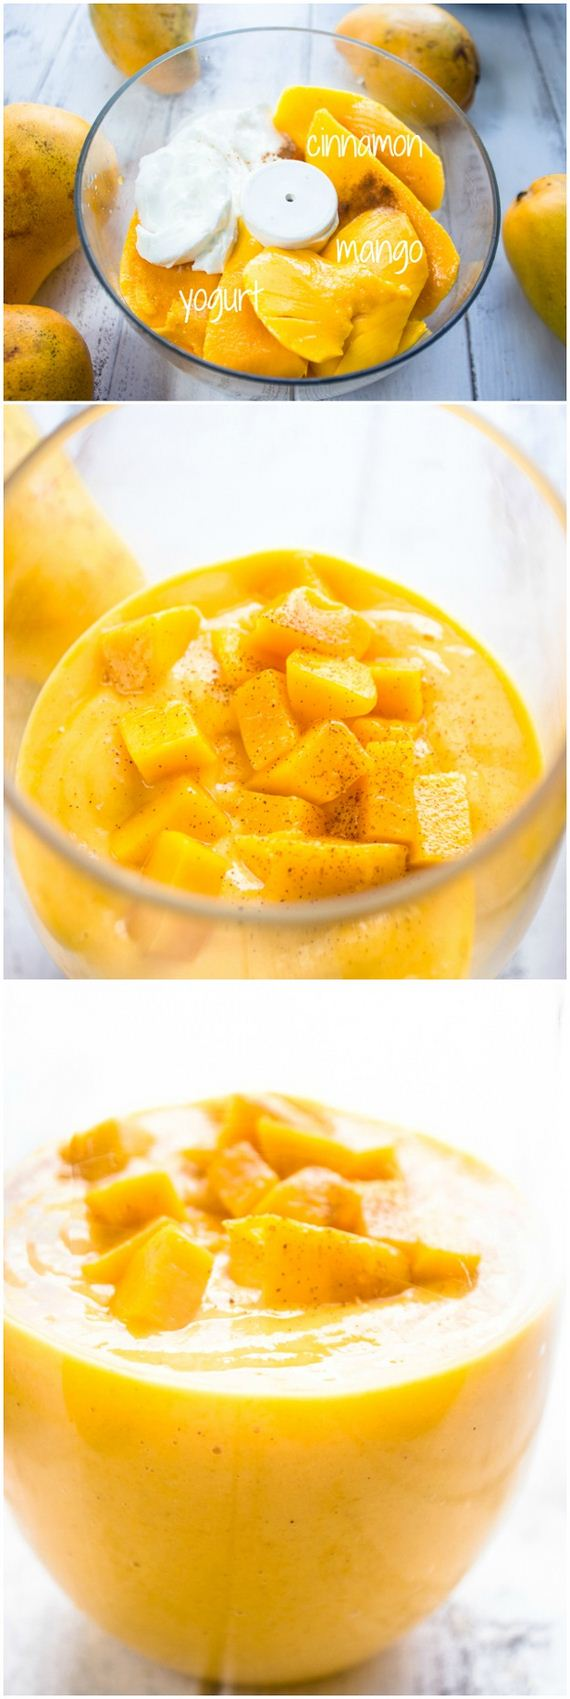 04-healthy_smoothie_recipes